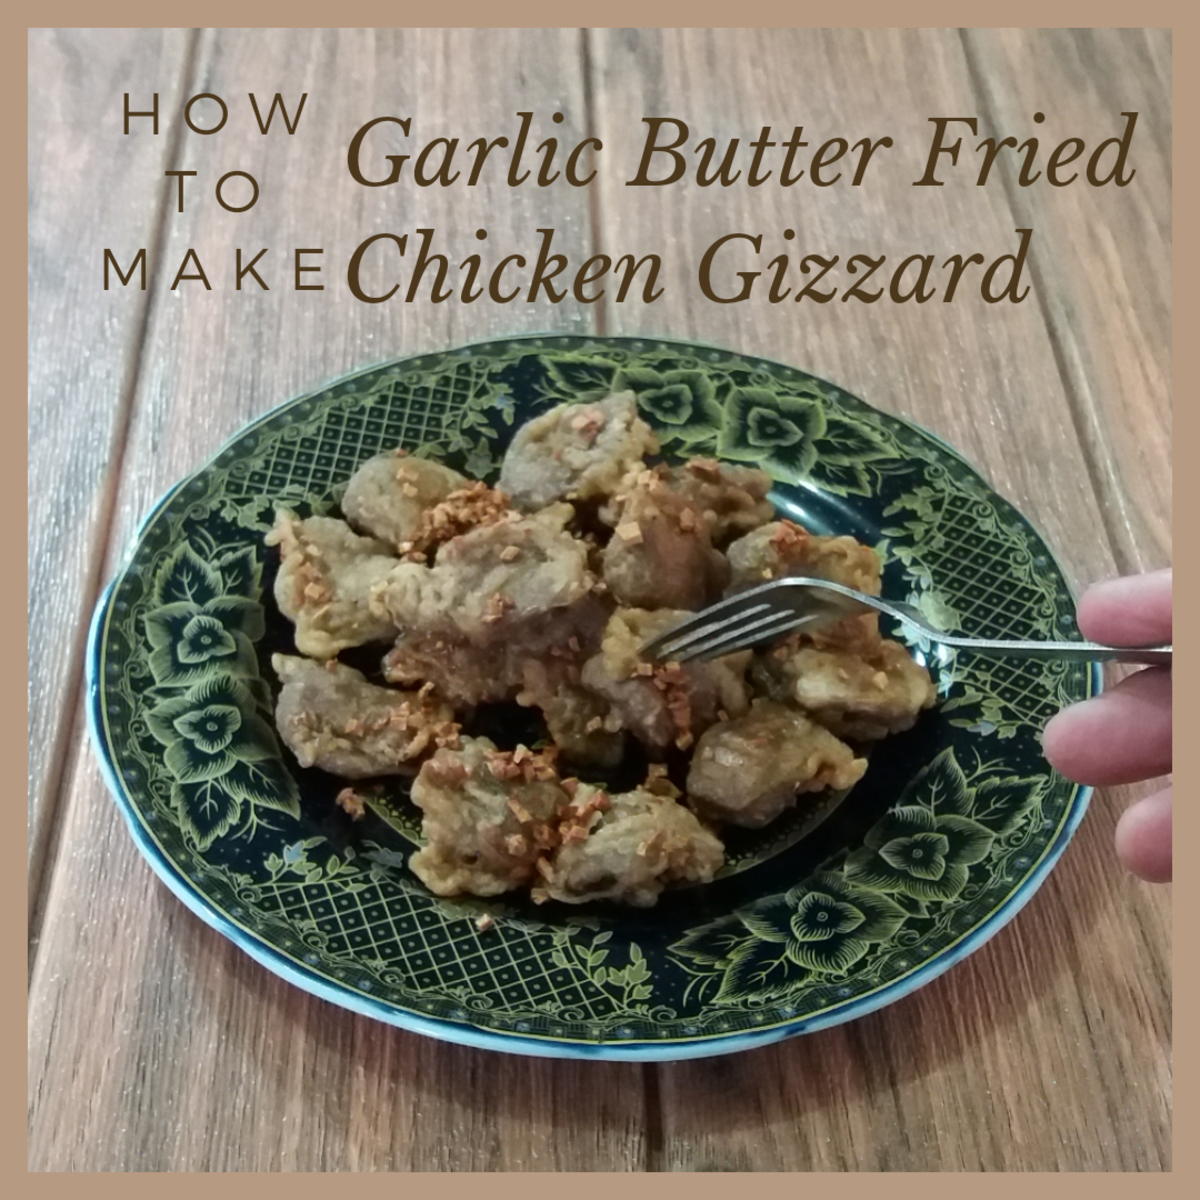 How to Make Fried Chicken Gizzards With Garlic Butter